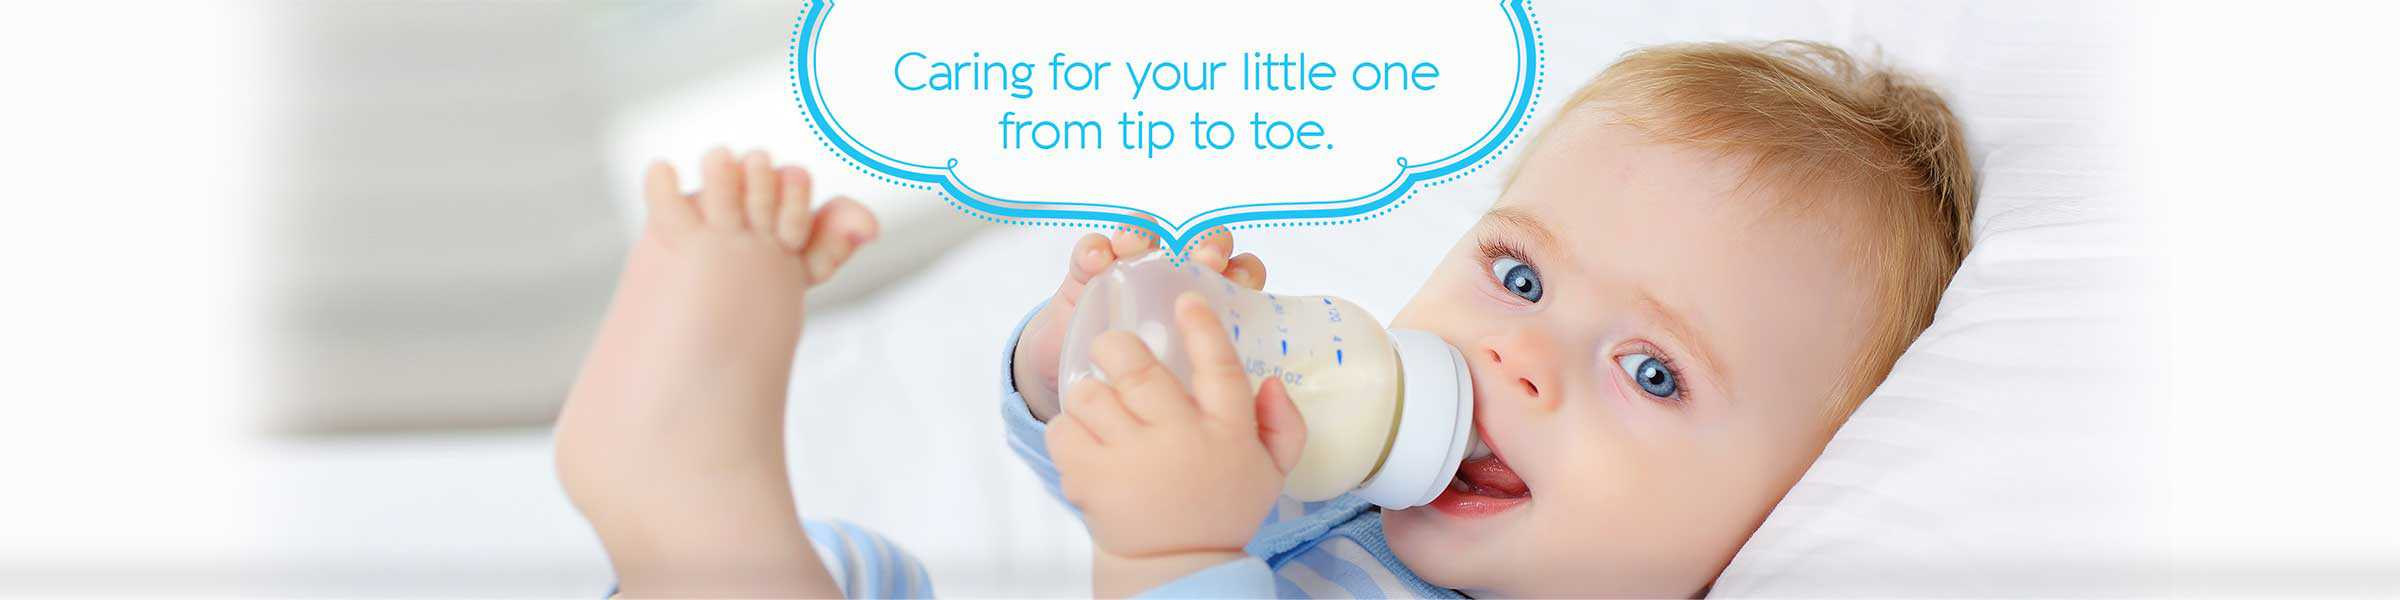 Caring for your little one from tip to toe.